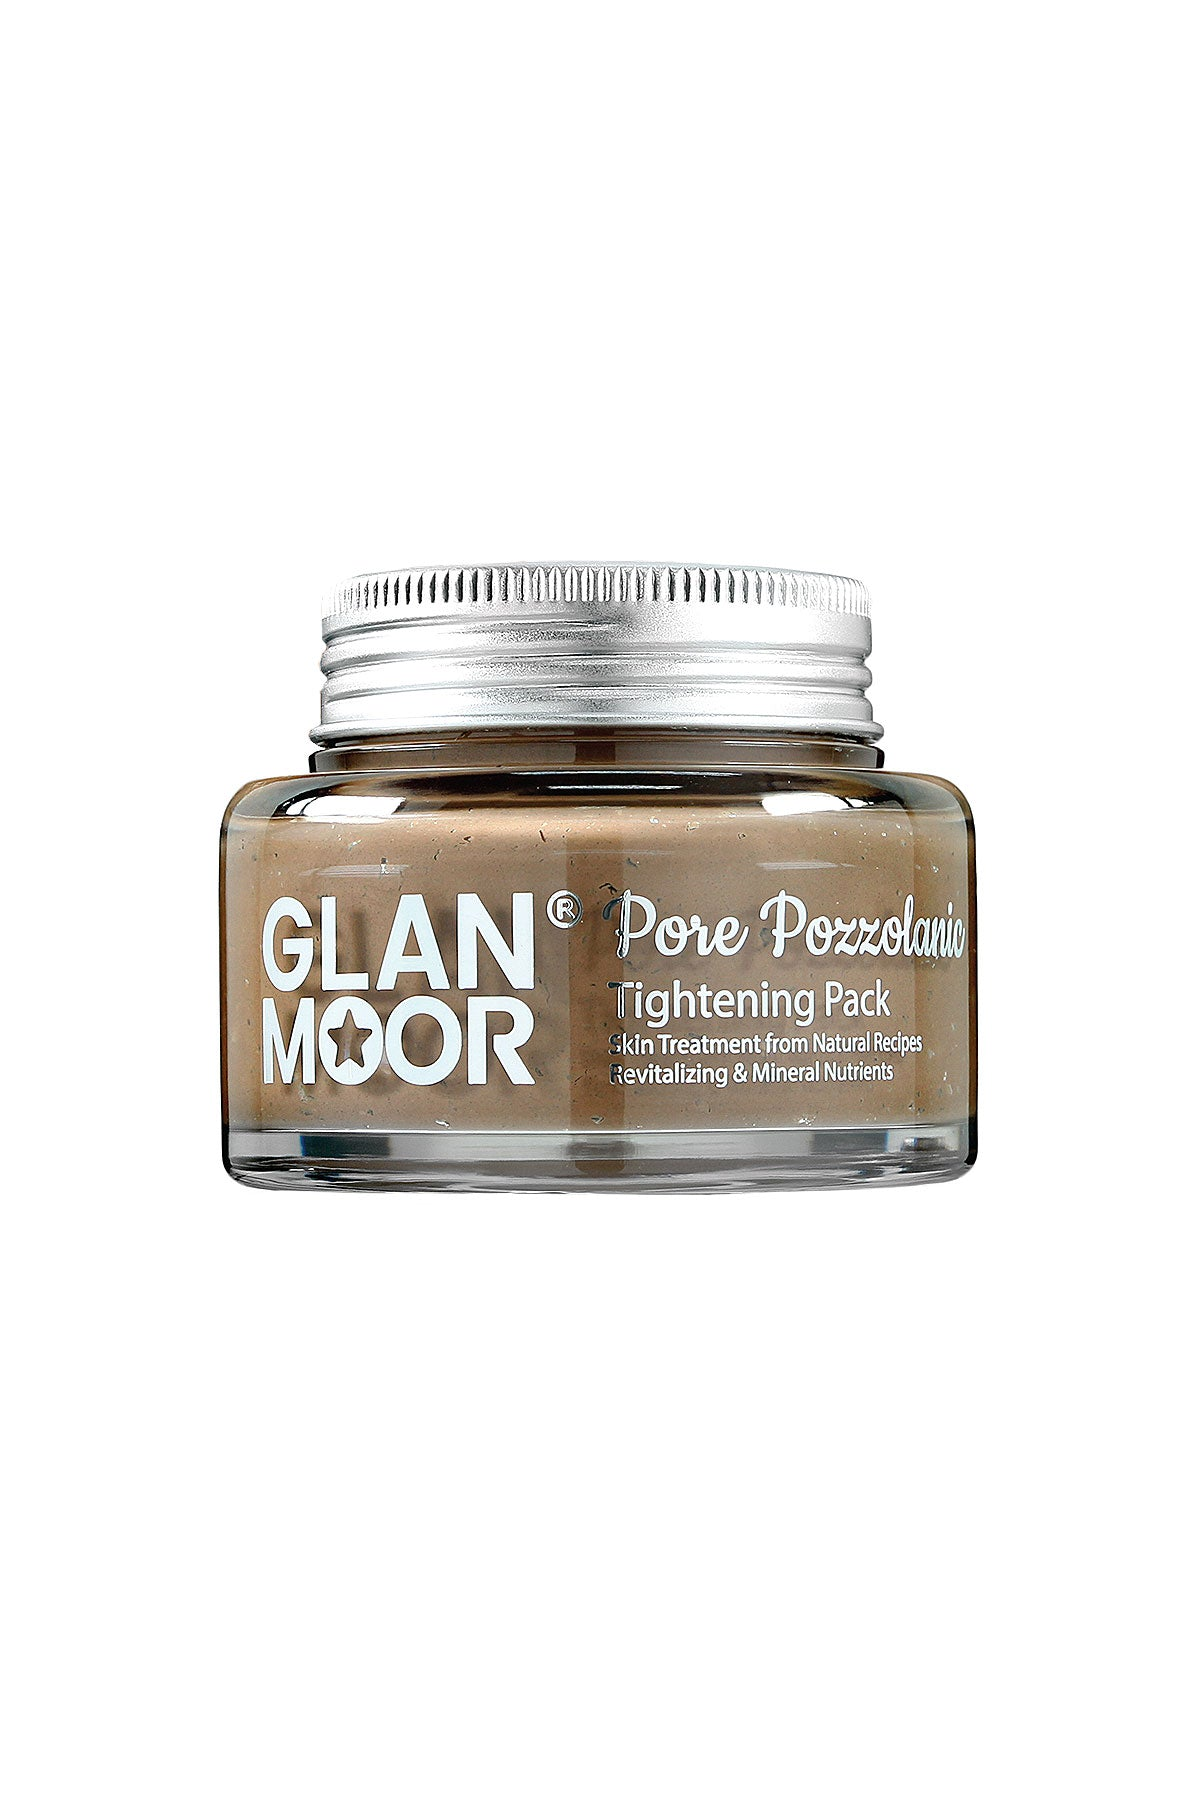 GLANMOOR Pore Pozzolanic Tightening Pack